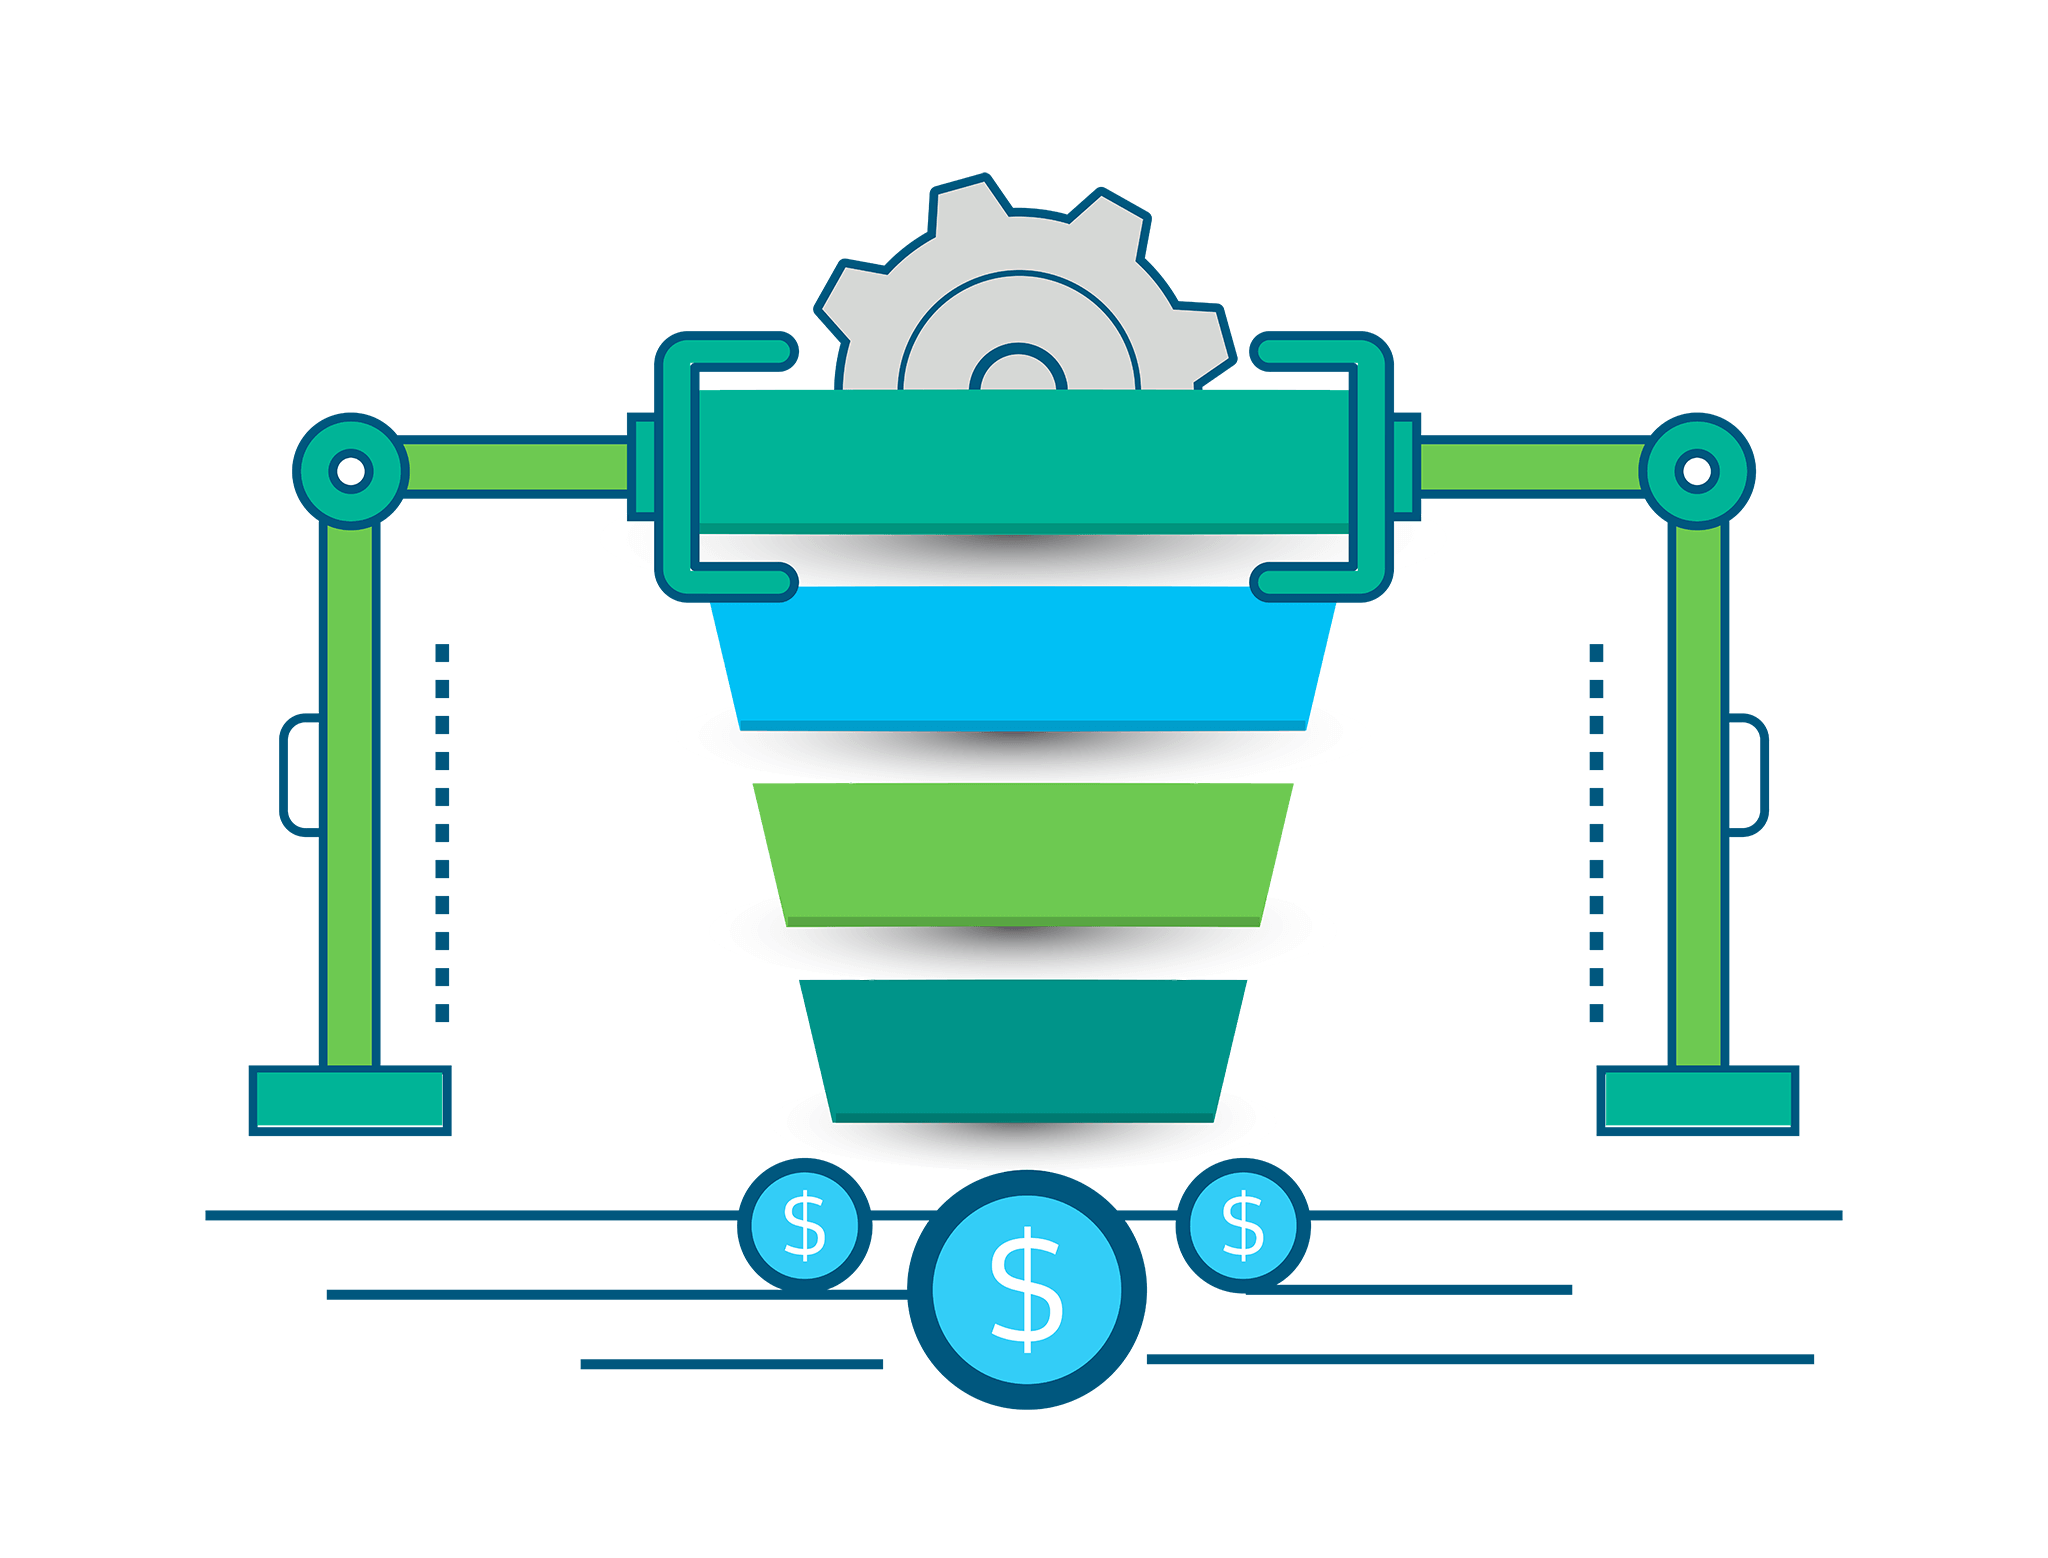 An illustration showing how Marketing Automation can lead to revenue for your business